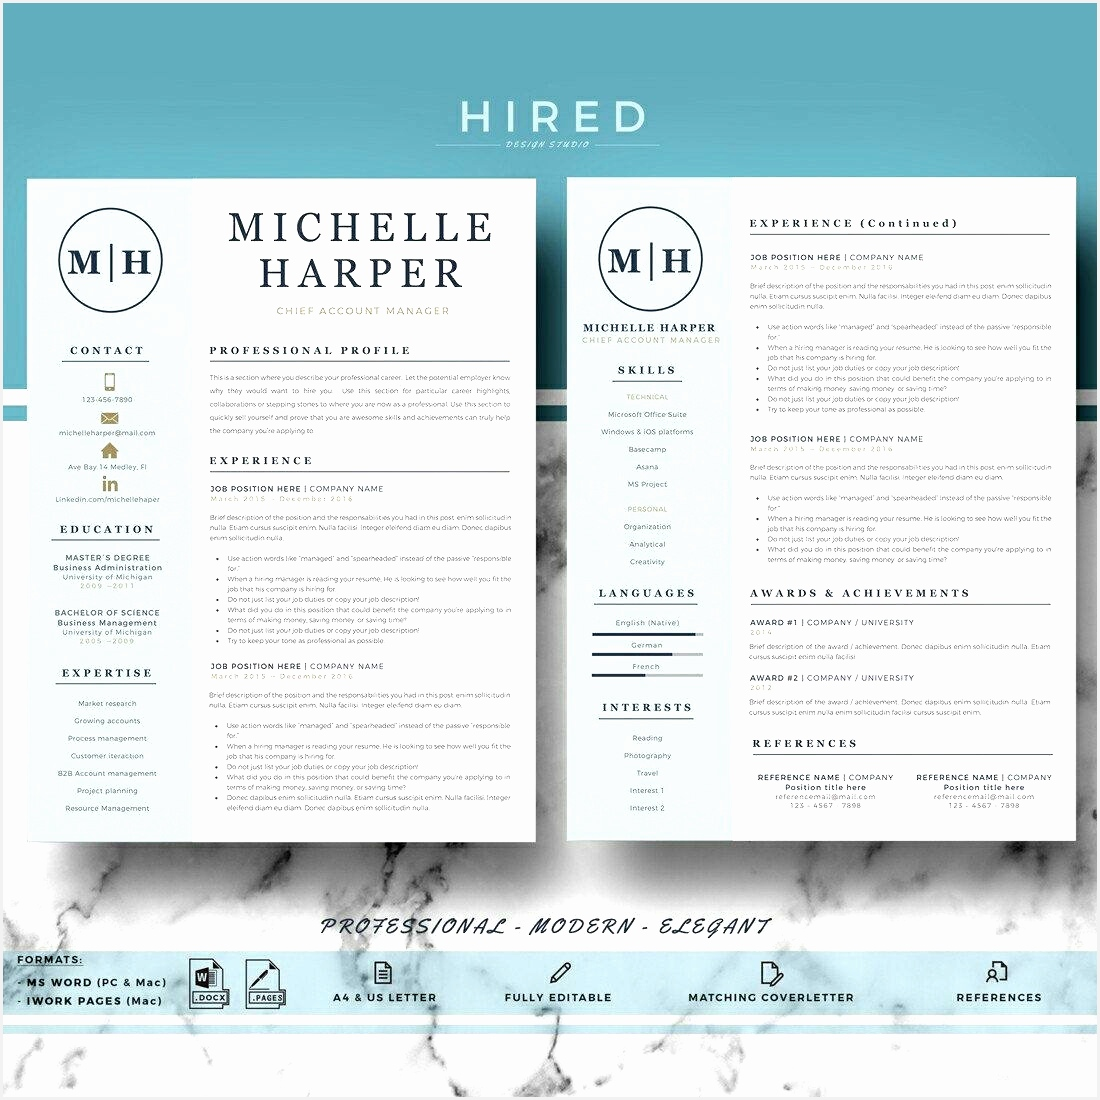 Mac Resume Templates New Professional & Modern Resume Template for Word and Pages11001100